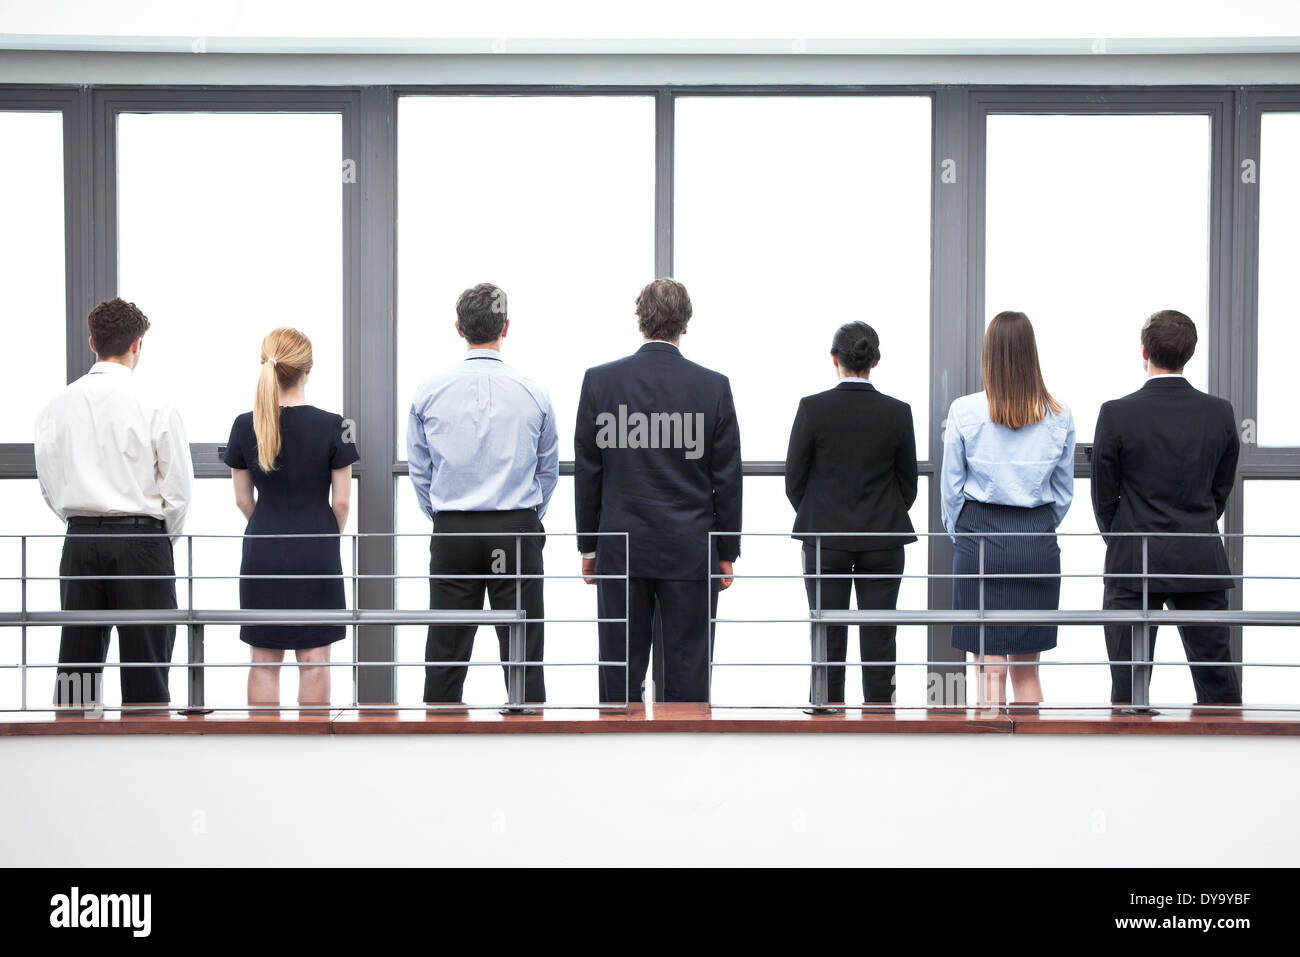 Team of business professionals, rear view - Stock Image